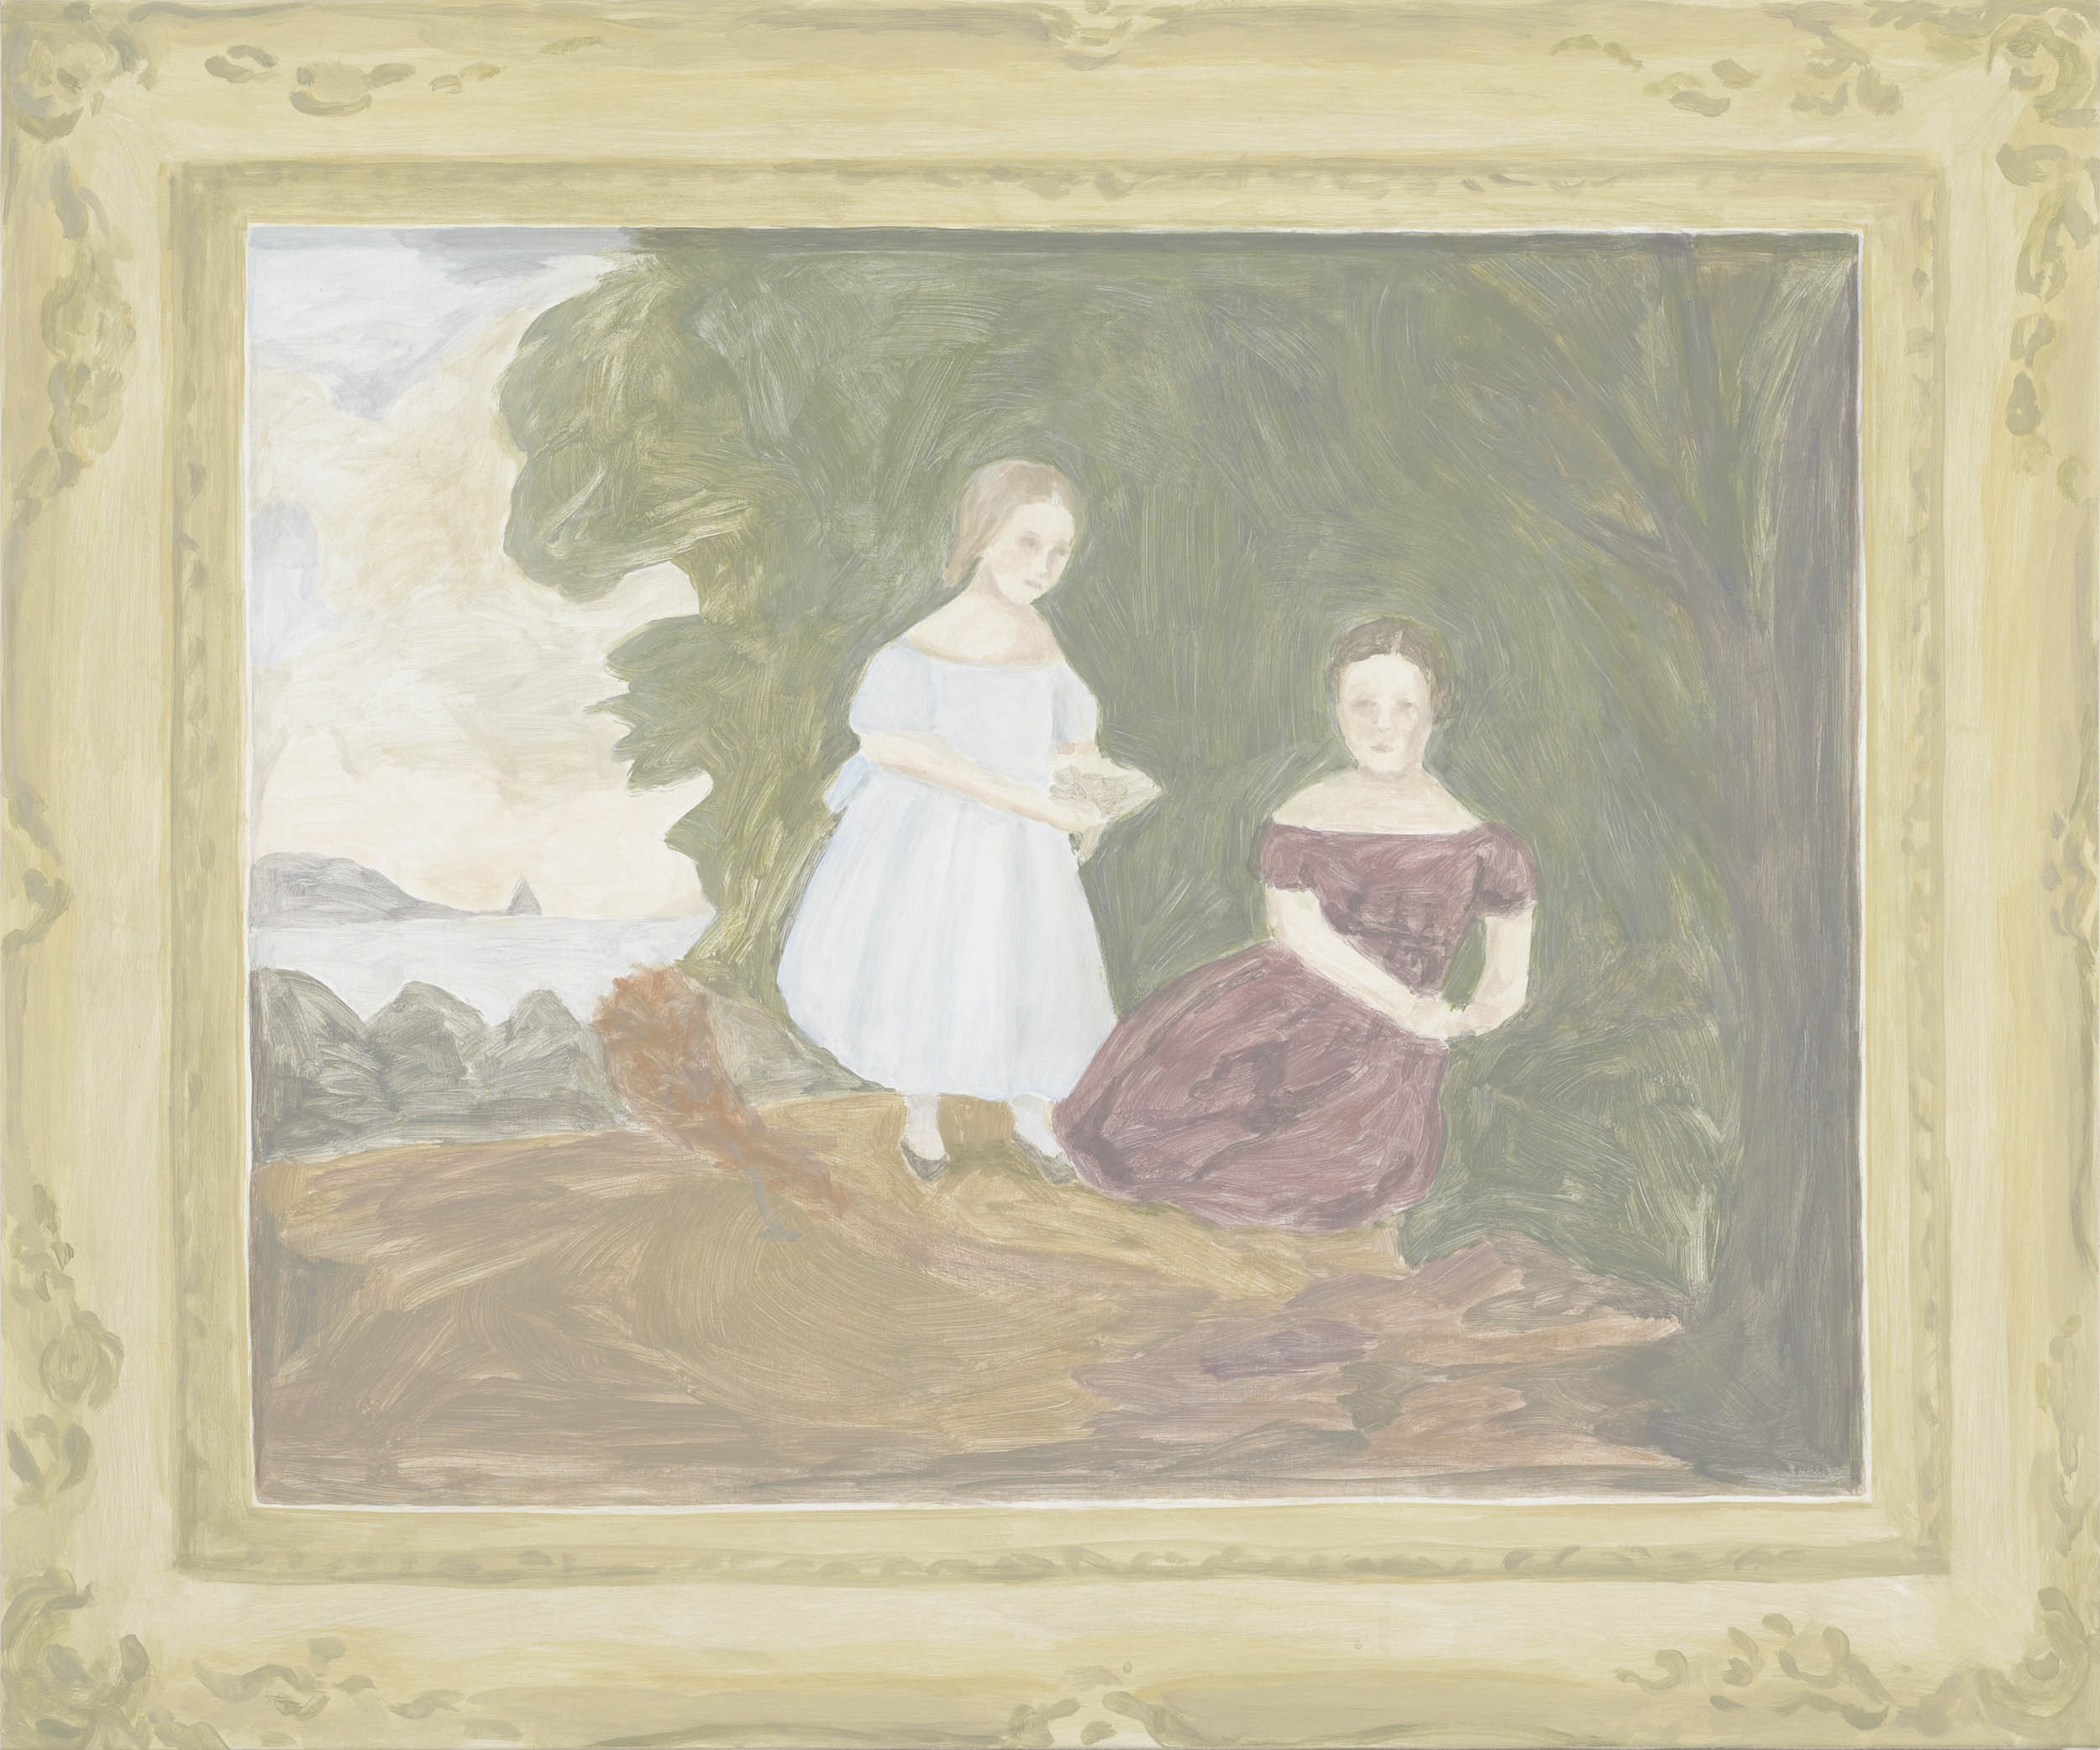 Framed Painting: Two Girls, acrylic on canvas over board, 30 x 36 inches, 2012.